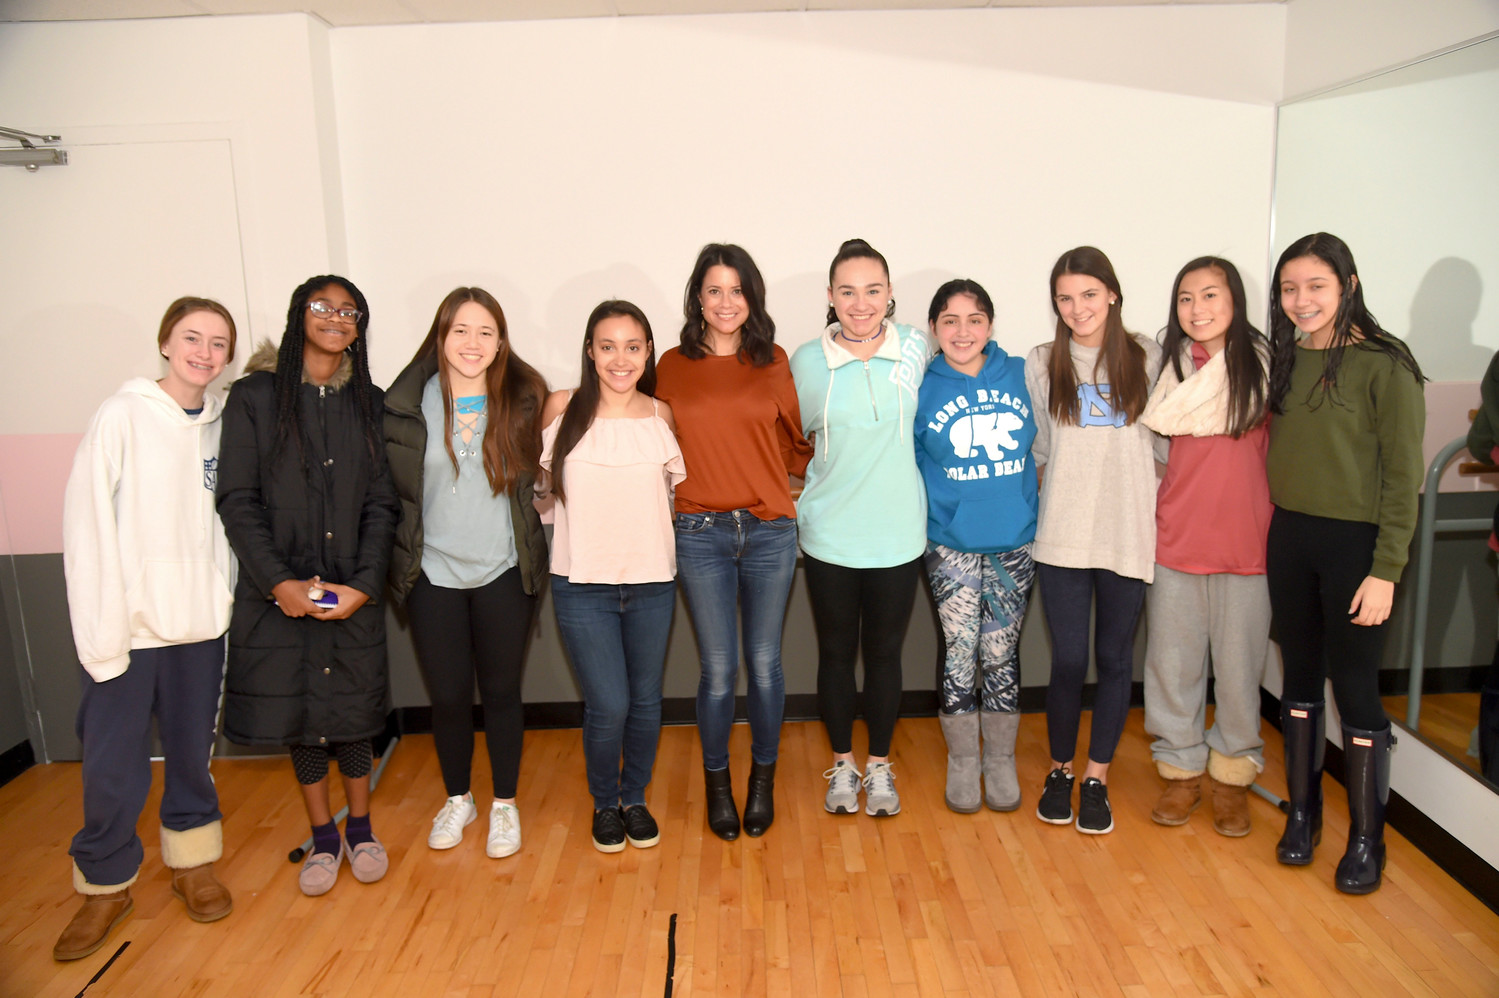 Cameron Churchfield, left, Hana Damas-Sylvain, Sadie Brett-Chin, Sydney Brett, founder of Sydney's Smiles, guest speaker Sandy Bassin, Bailey Mullen, Shannon Smith, Lindsay Miller, Megan Tierney and Juliana Smith joined together for a Girls Empowerment Workshop in Rockville Centre on Feb. 4.